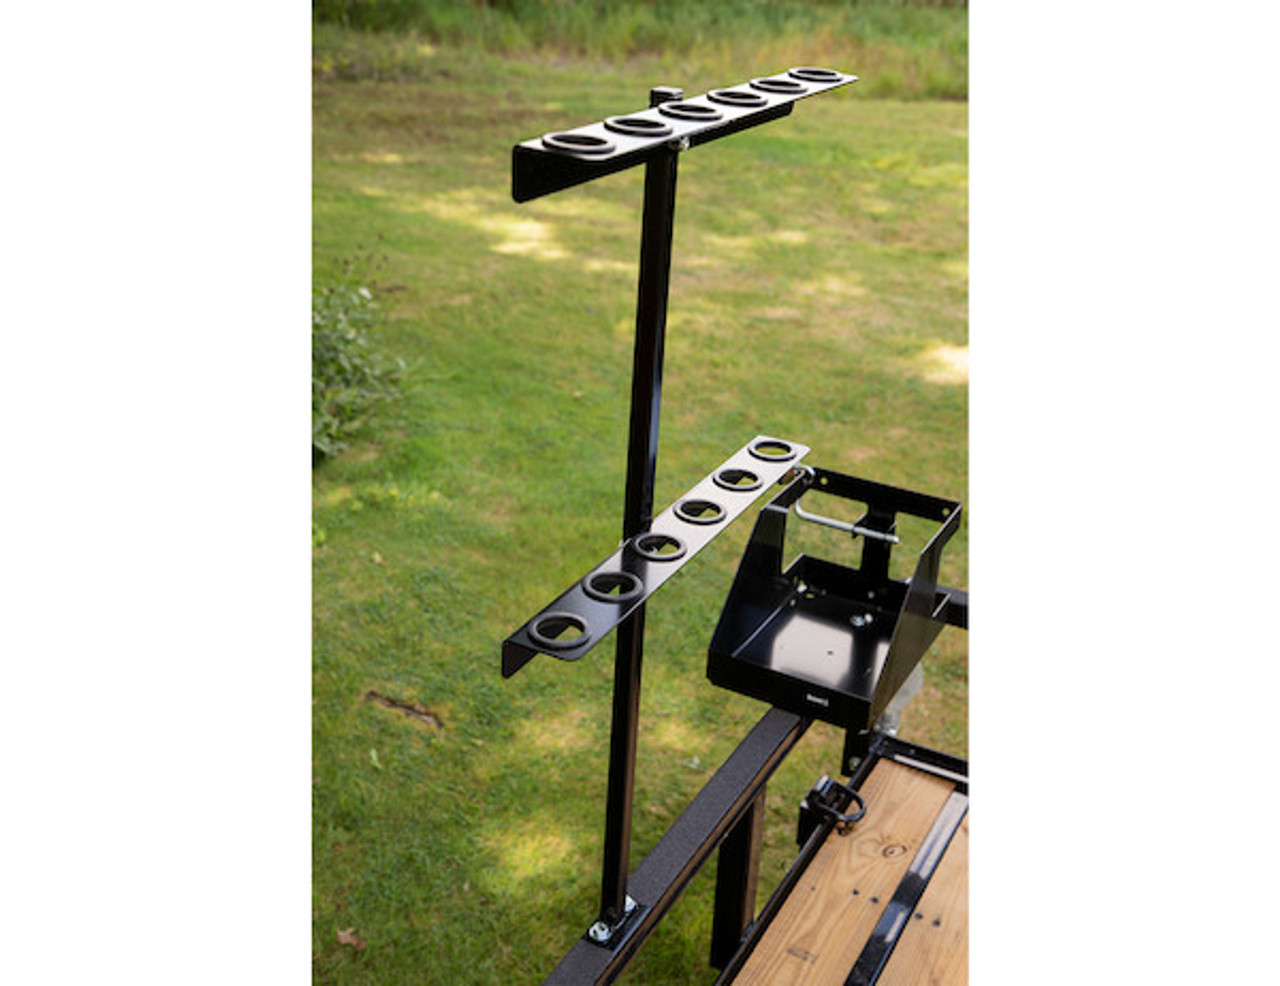 Buyers LT35 Vertical Hand Tool Rack for Landscaping Trailers, Garages, Sheds, Construction Vehicles Picture # 2